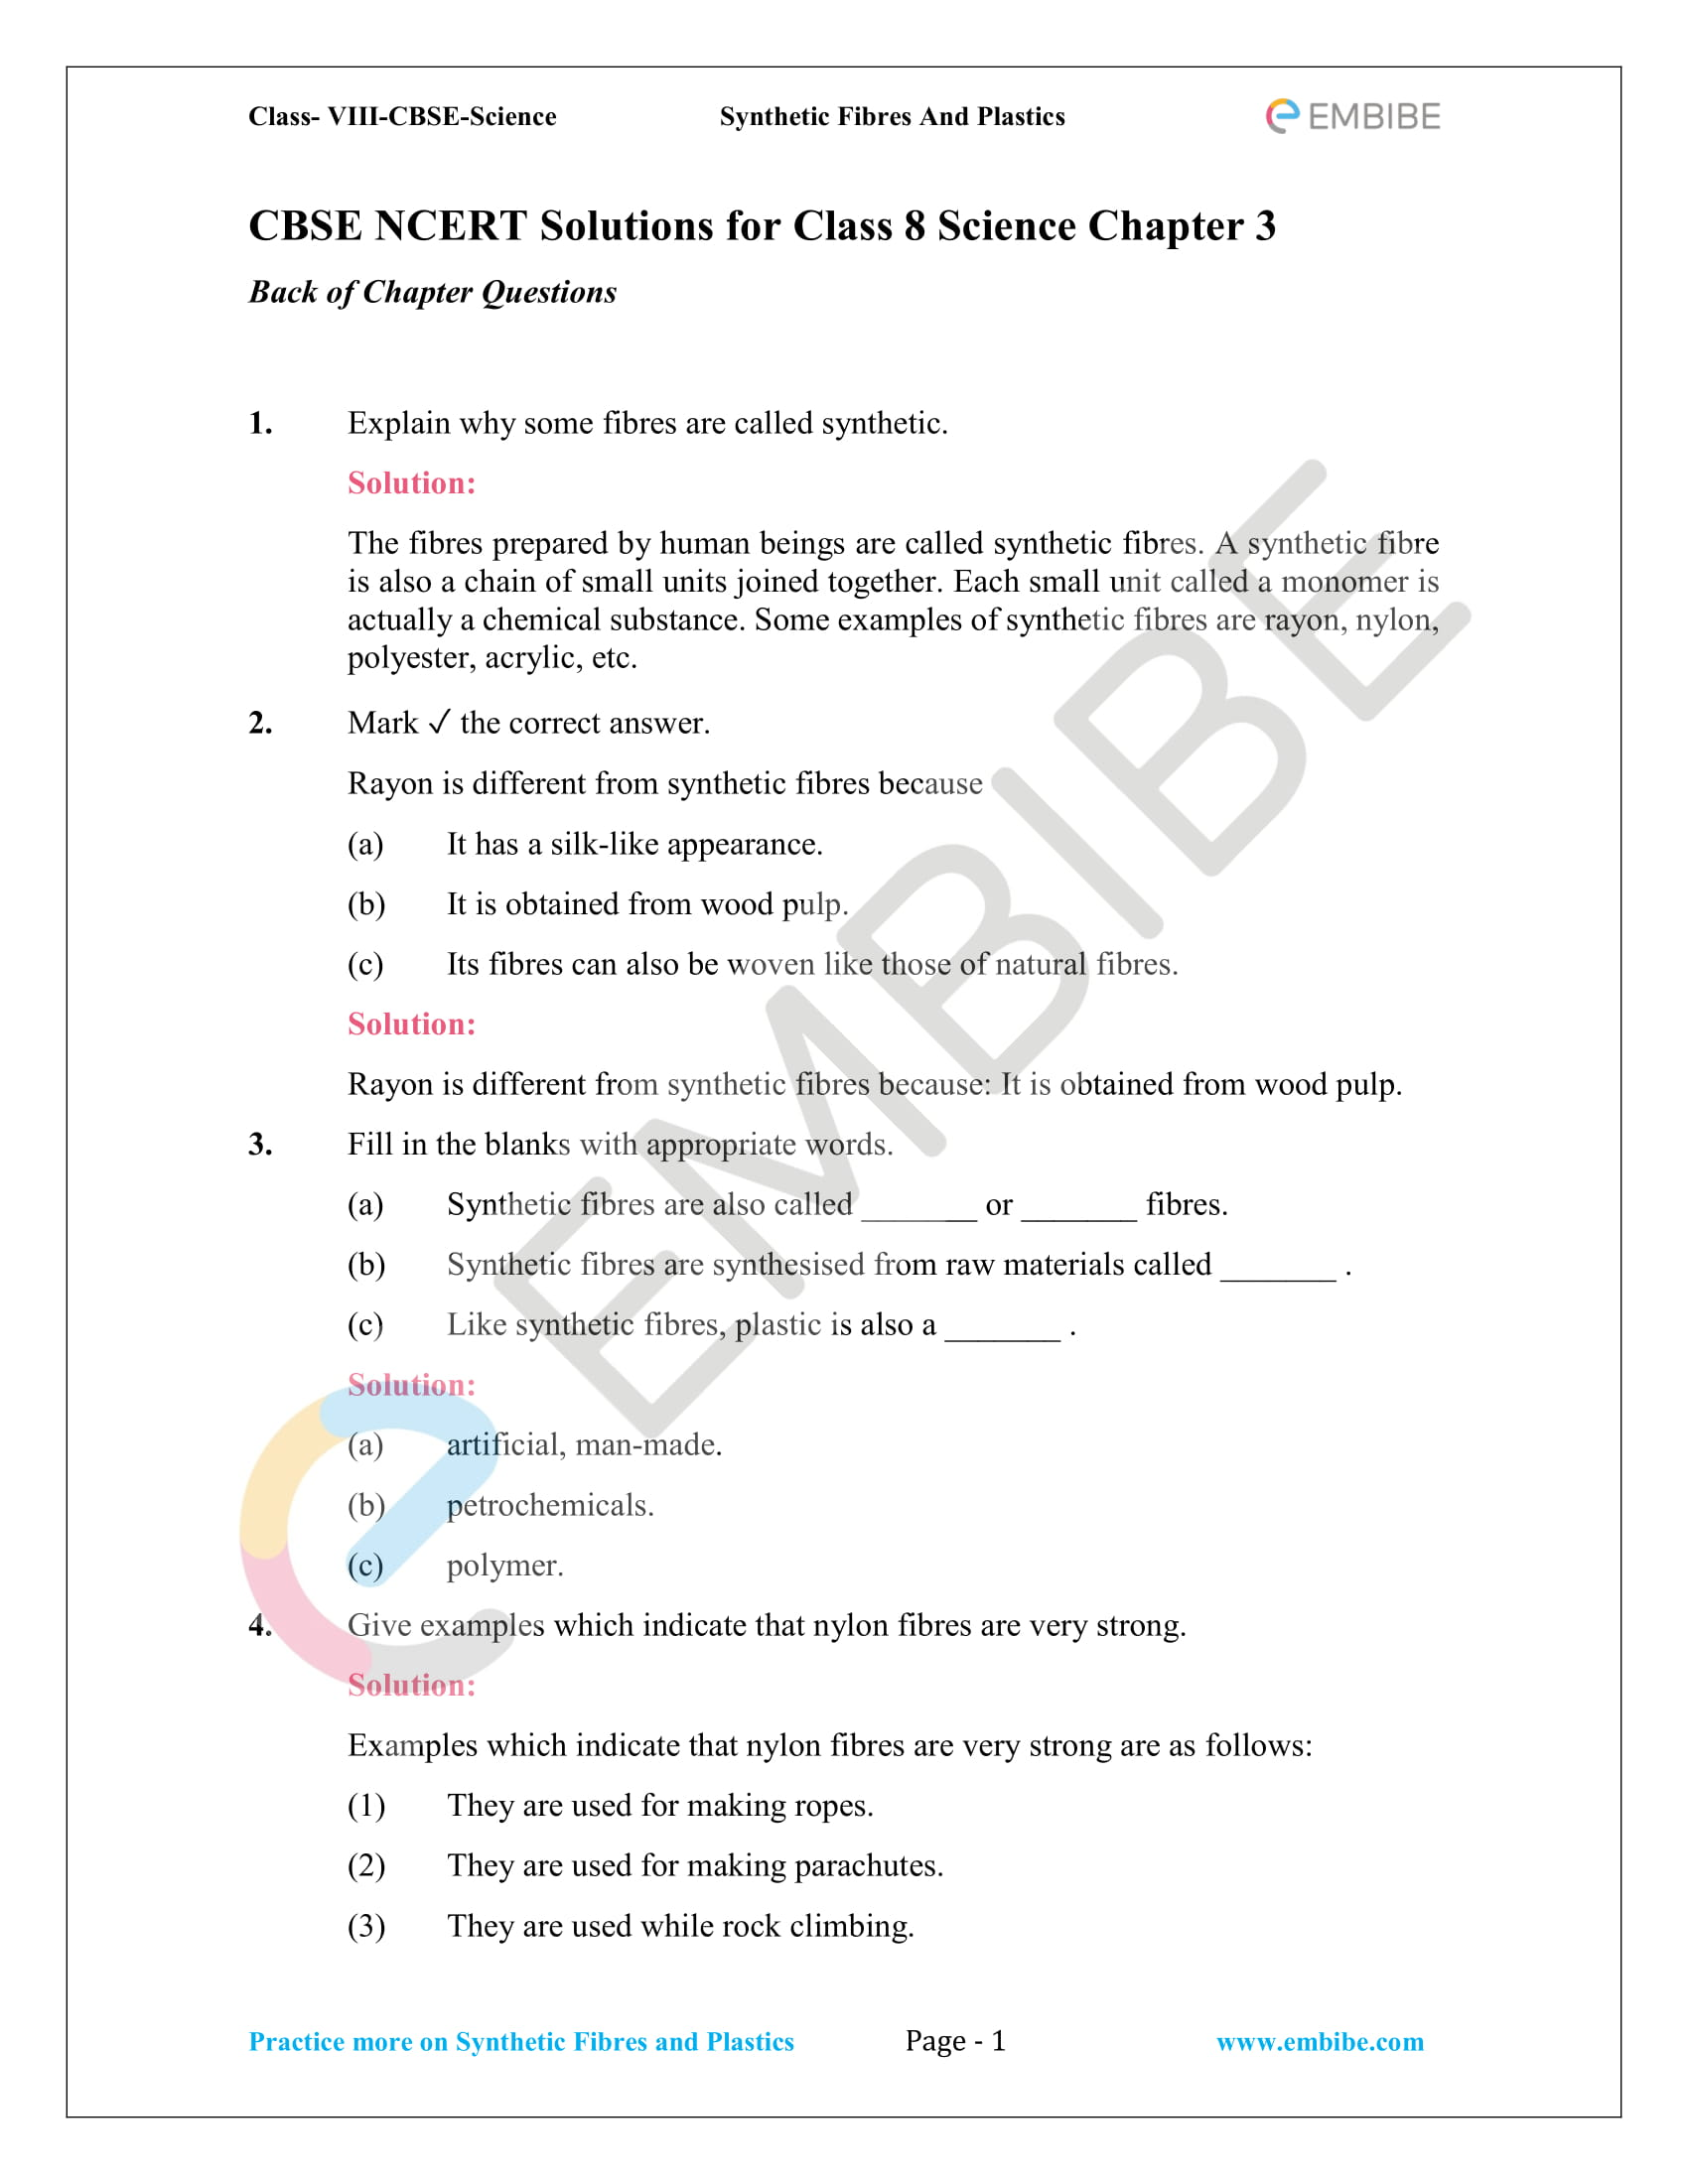 NCERT Solutions For Class 8 Science Chapter 3 PDF: Synthetic